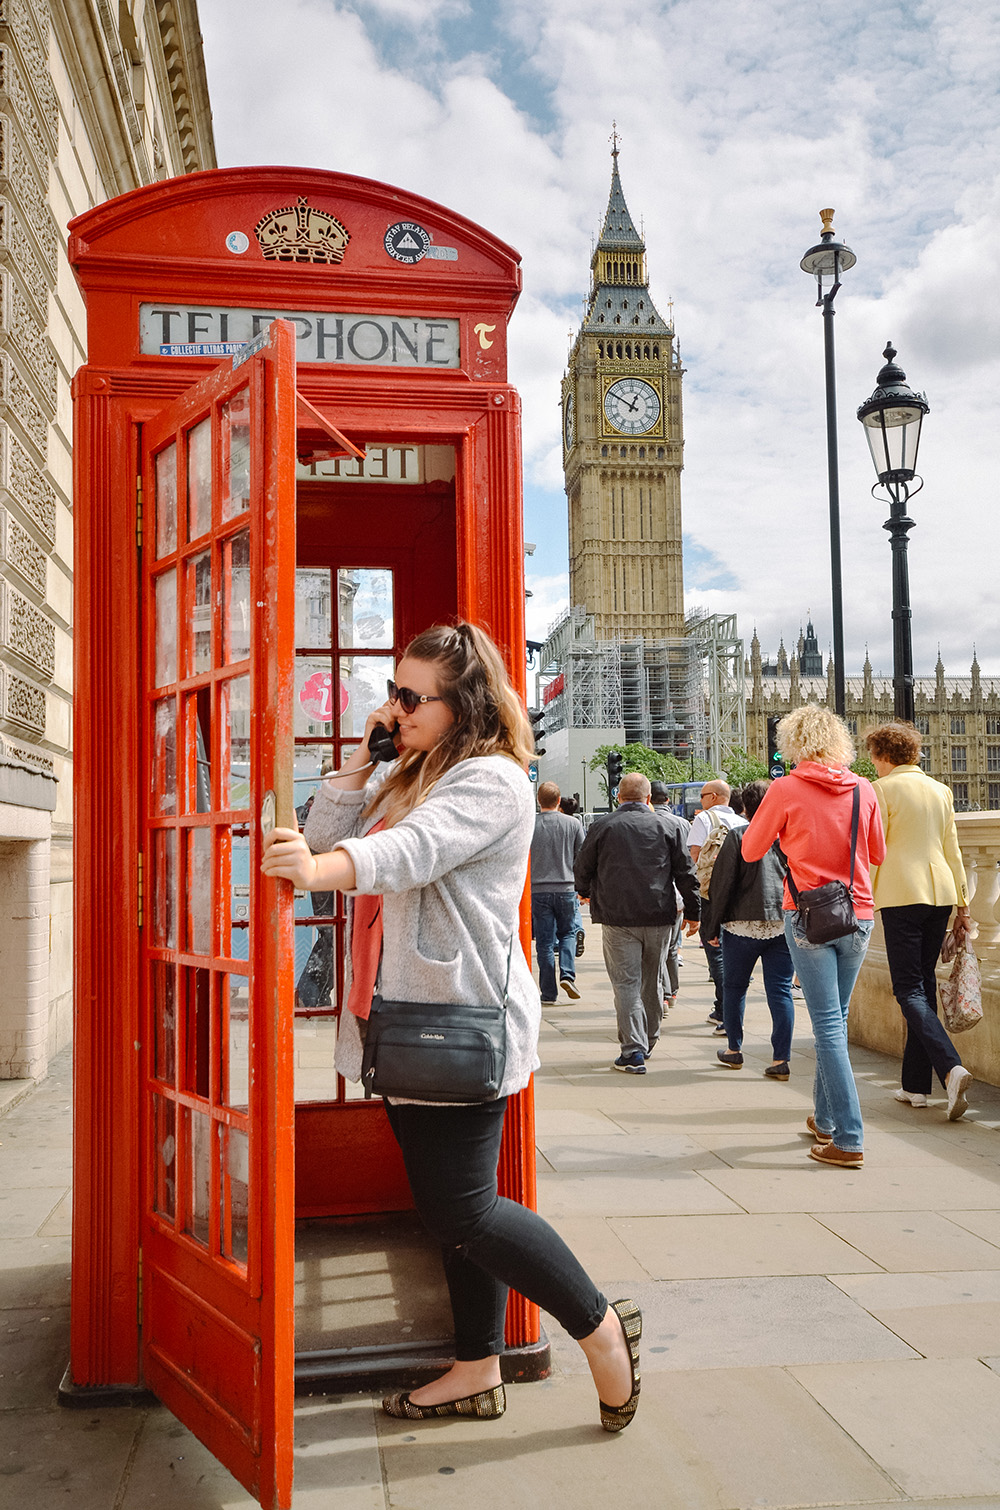 22 Most Beautiful Spots in London England by Charuk Studios